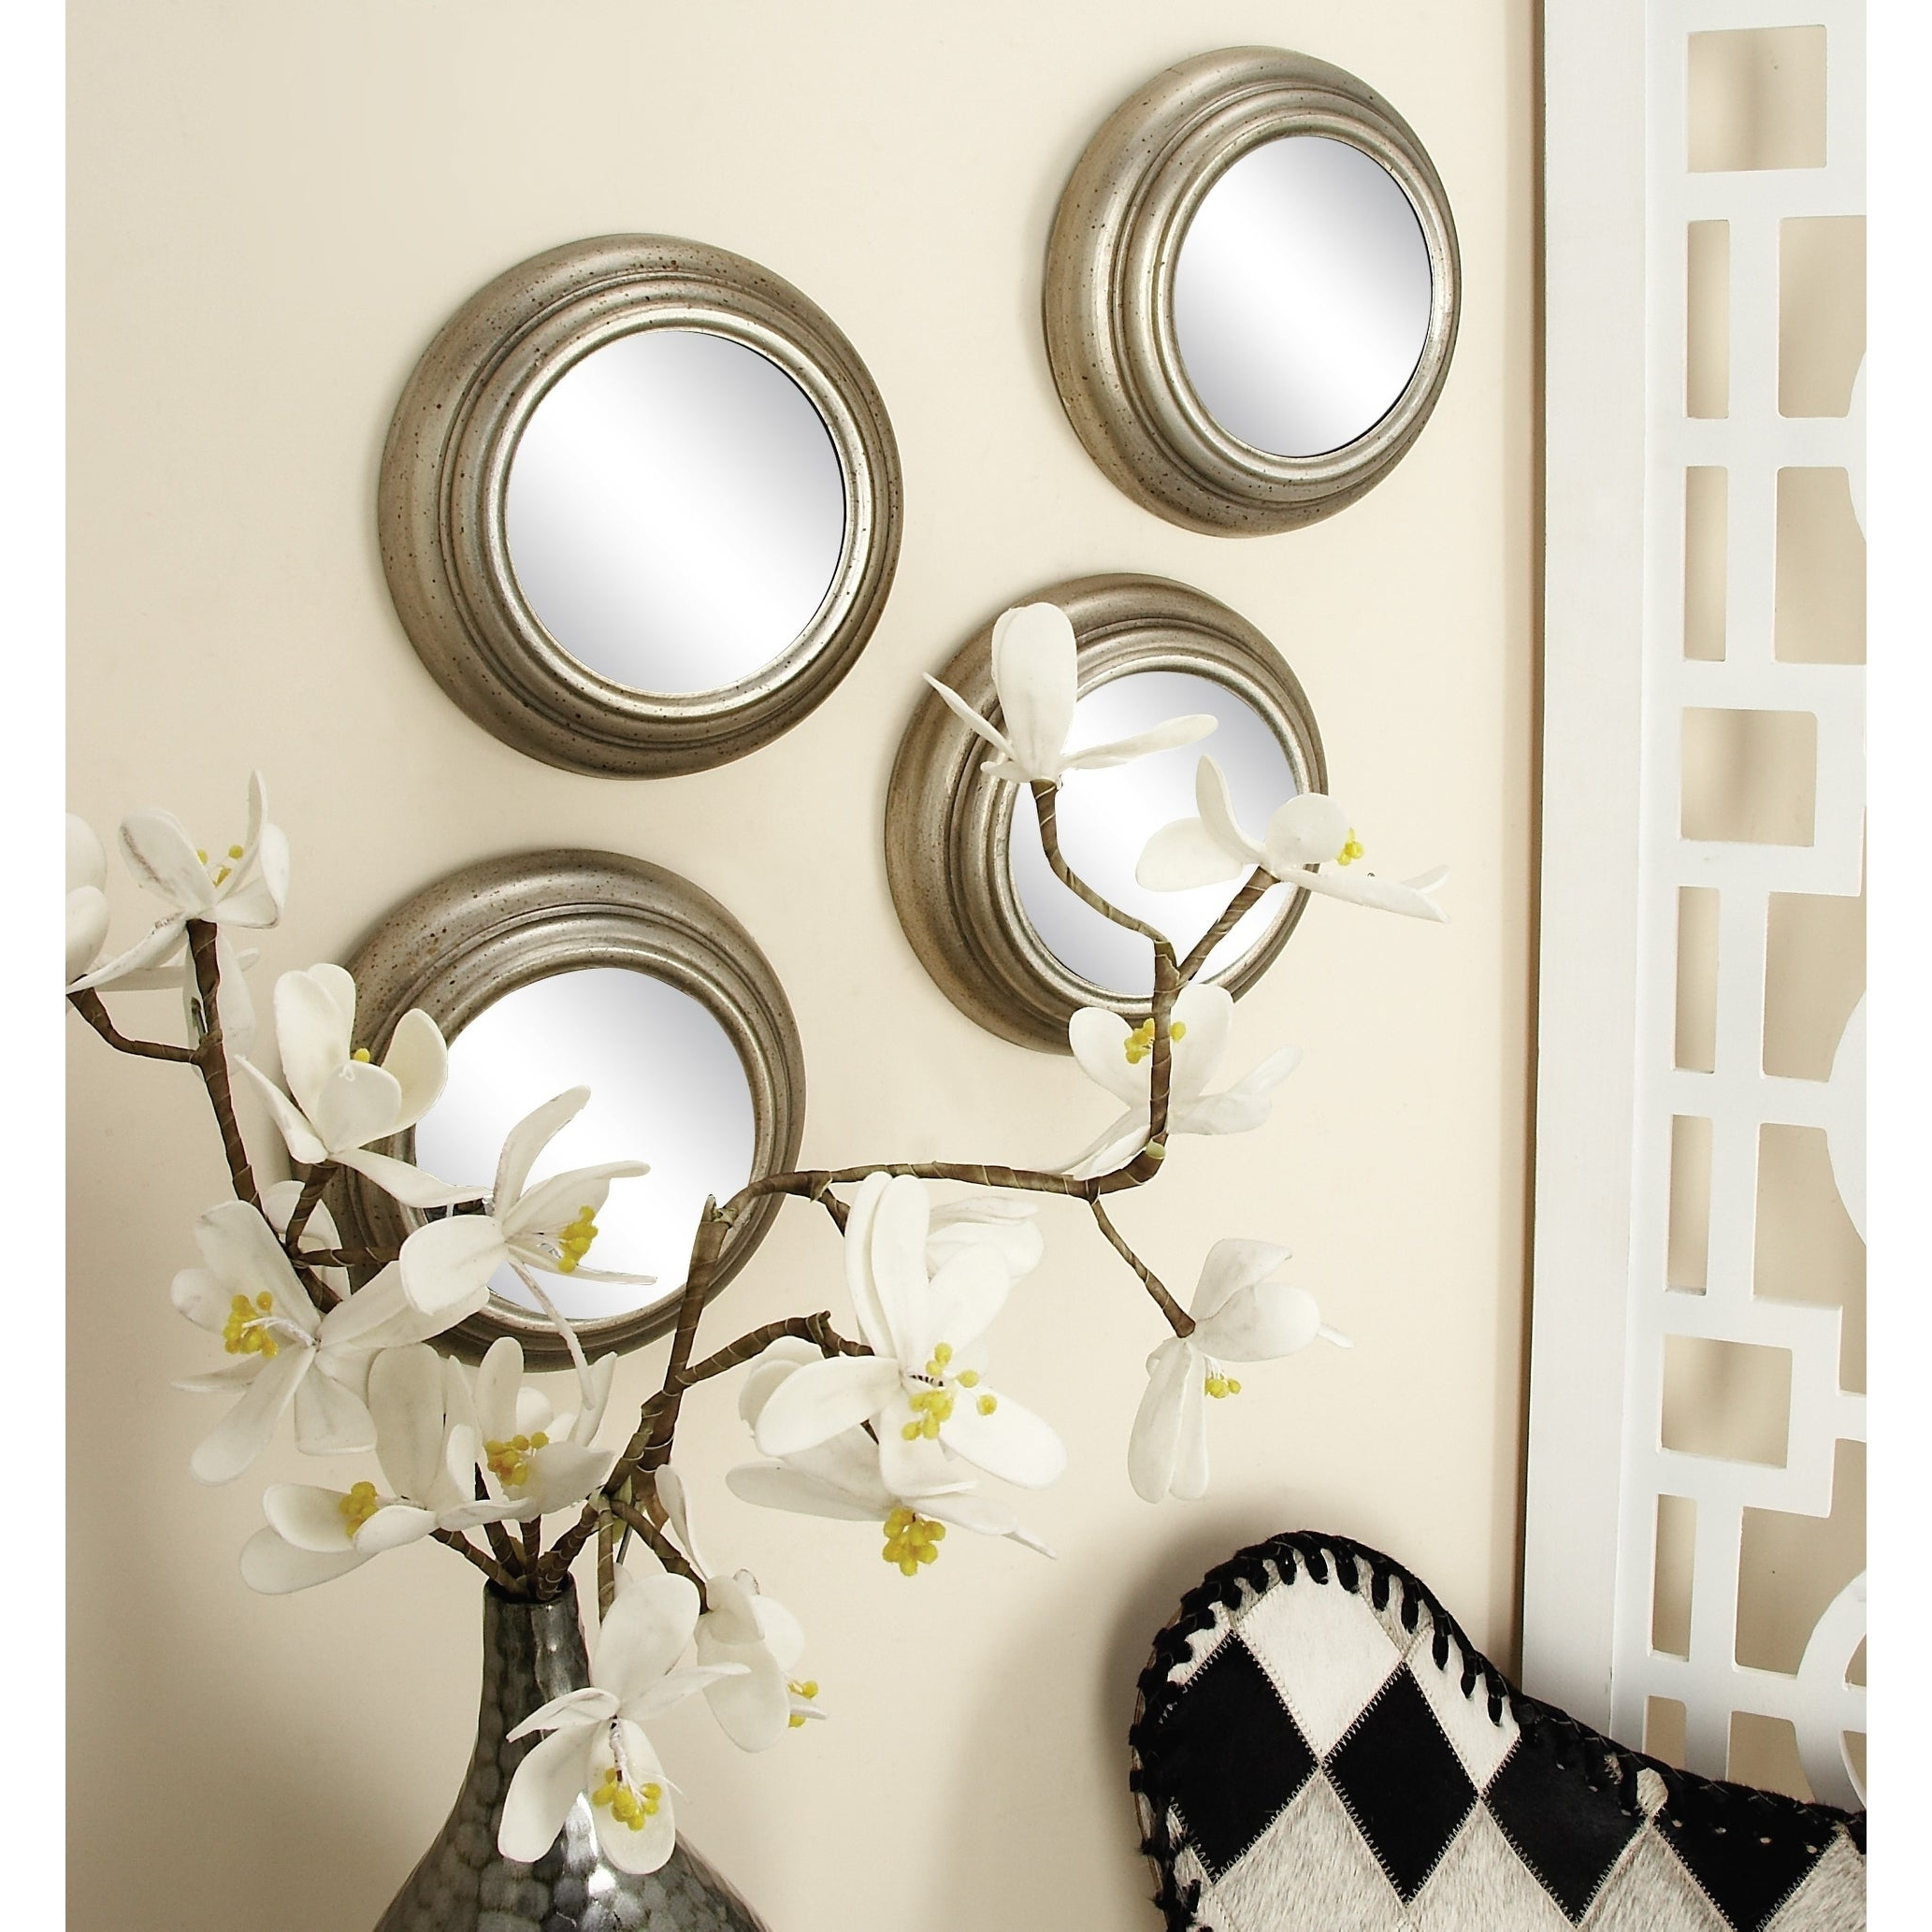 Decorative Contemporary Wall Mirrors Within Favorite Set Of 12 Contemporary Round Decorative Wall Mirrorsstudio 350 – Silver (View 7 of 20)